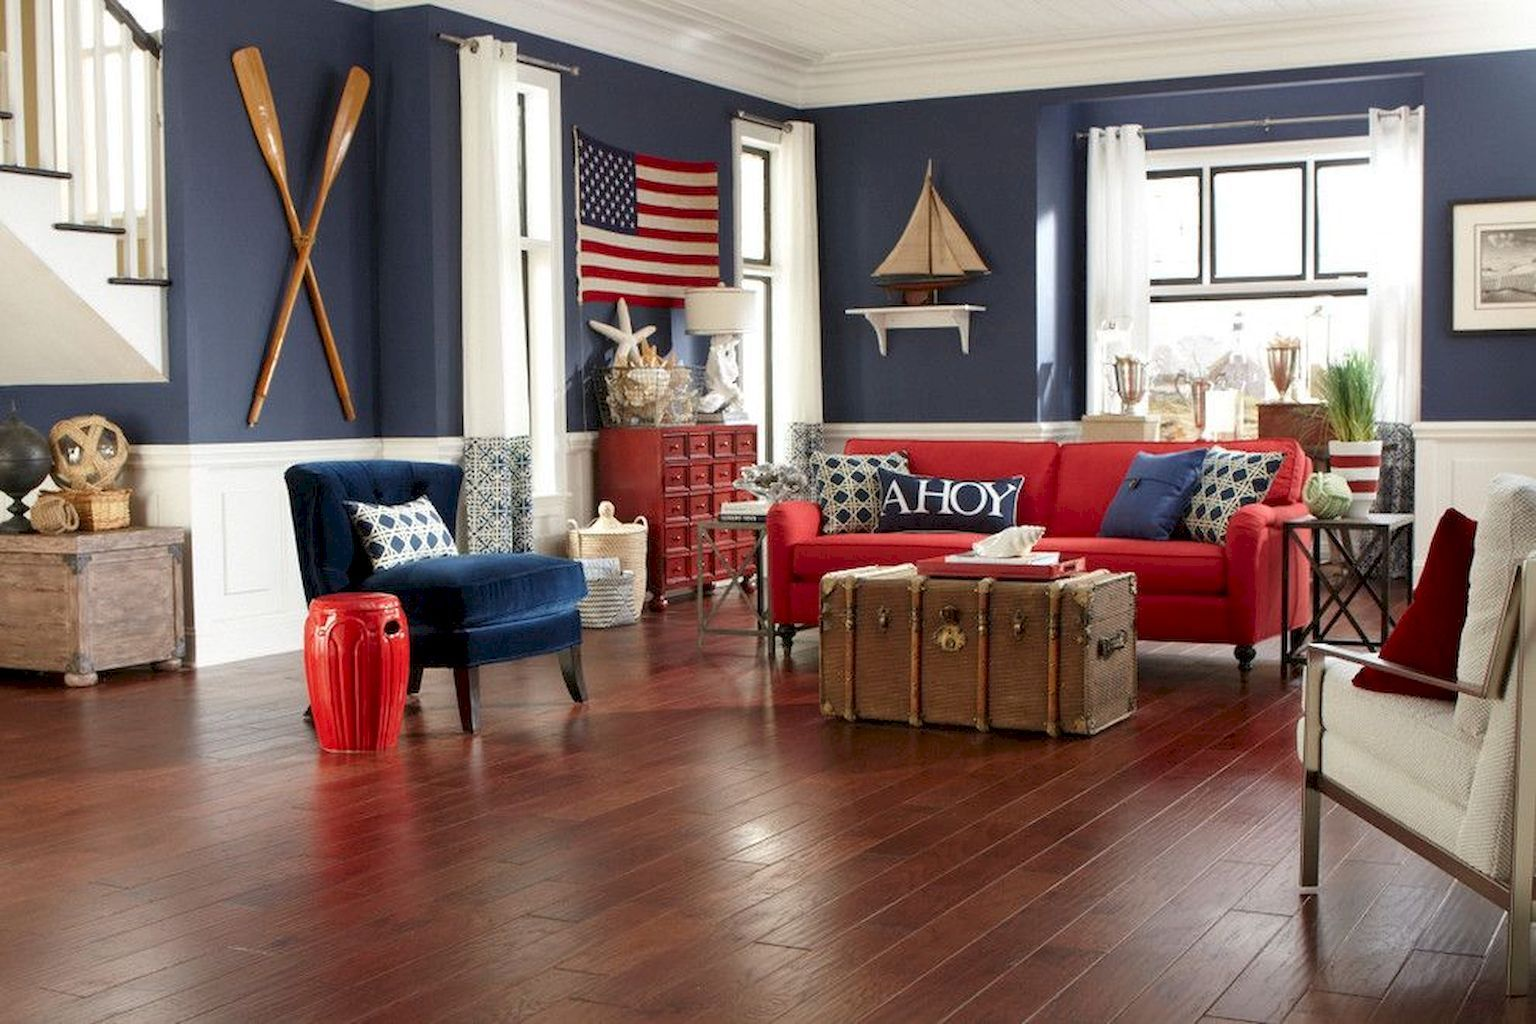 Gorgeous 70 Cool And Clean Coastal Living Room Decorating Ideas Https Coachdecor Com 70 Cool Americana Living Rooms Nautical Living Room Coastal Living Rooms Americana living room decor